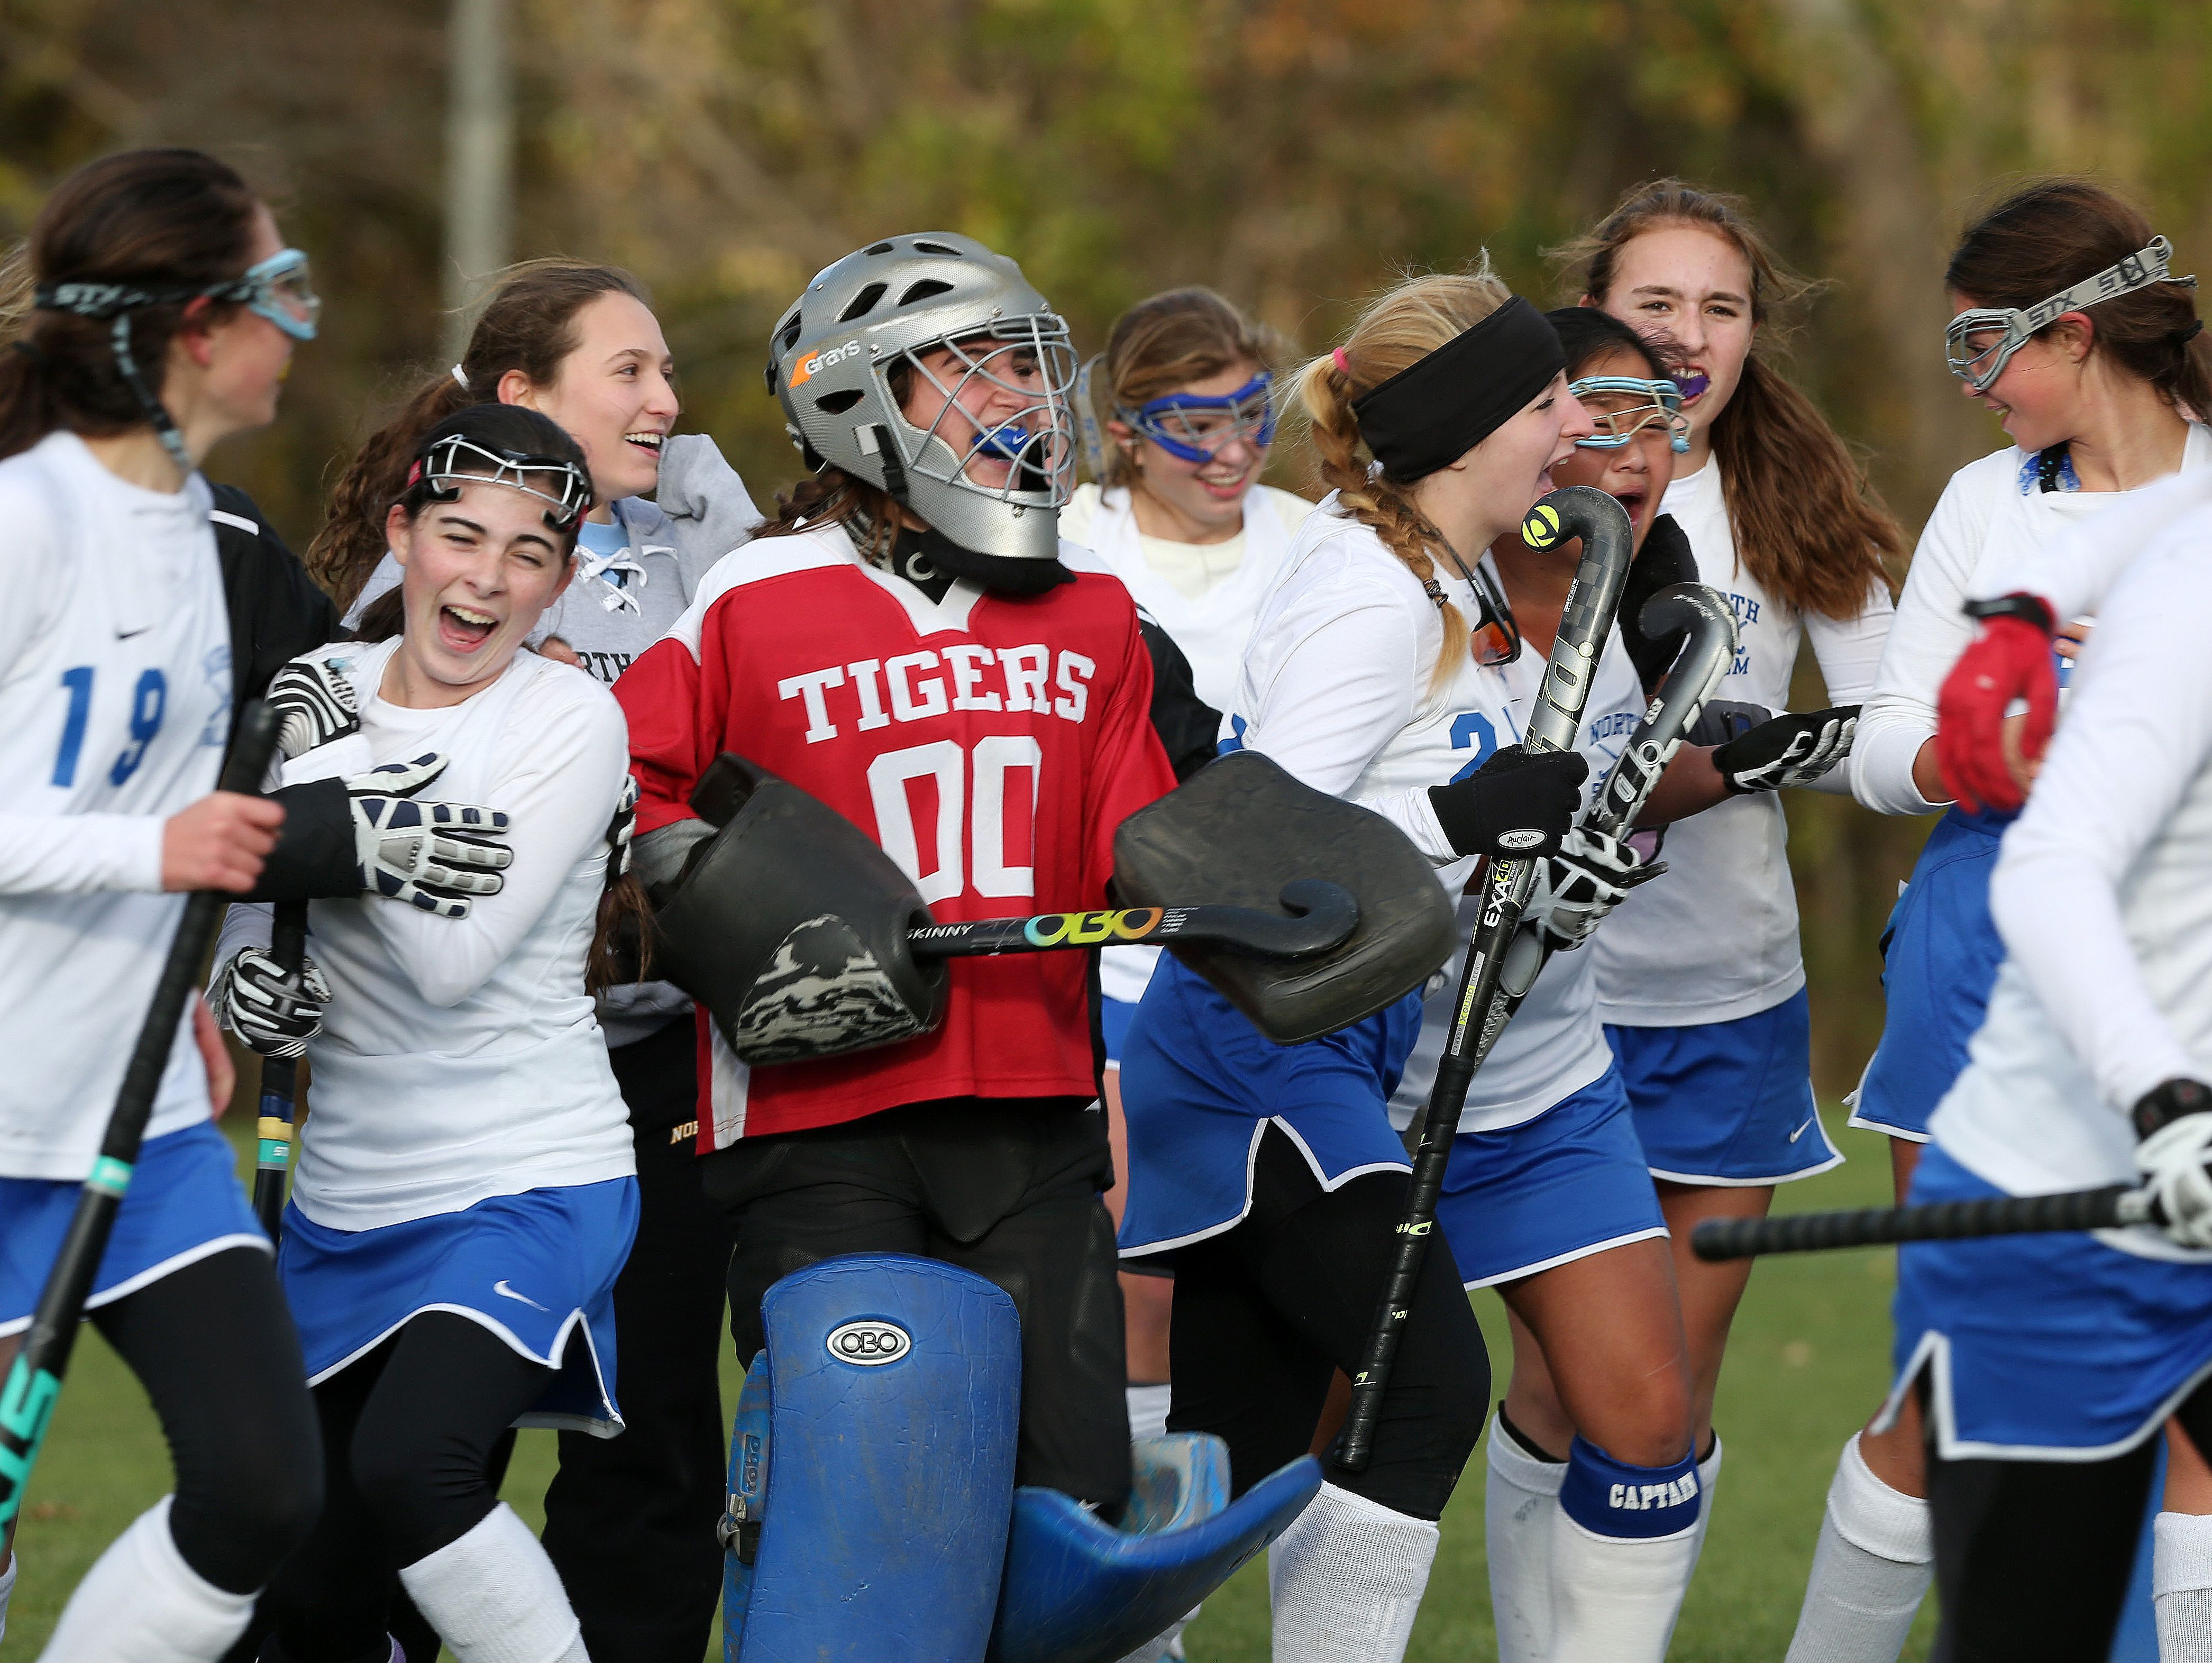 North Salem field hockey players celebrate their 1-0 victory over Pawling at North Salem High School Oct. 25, 2016.